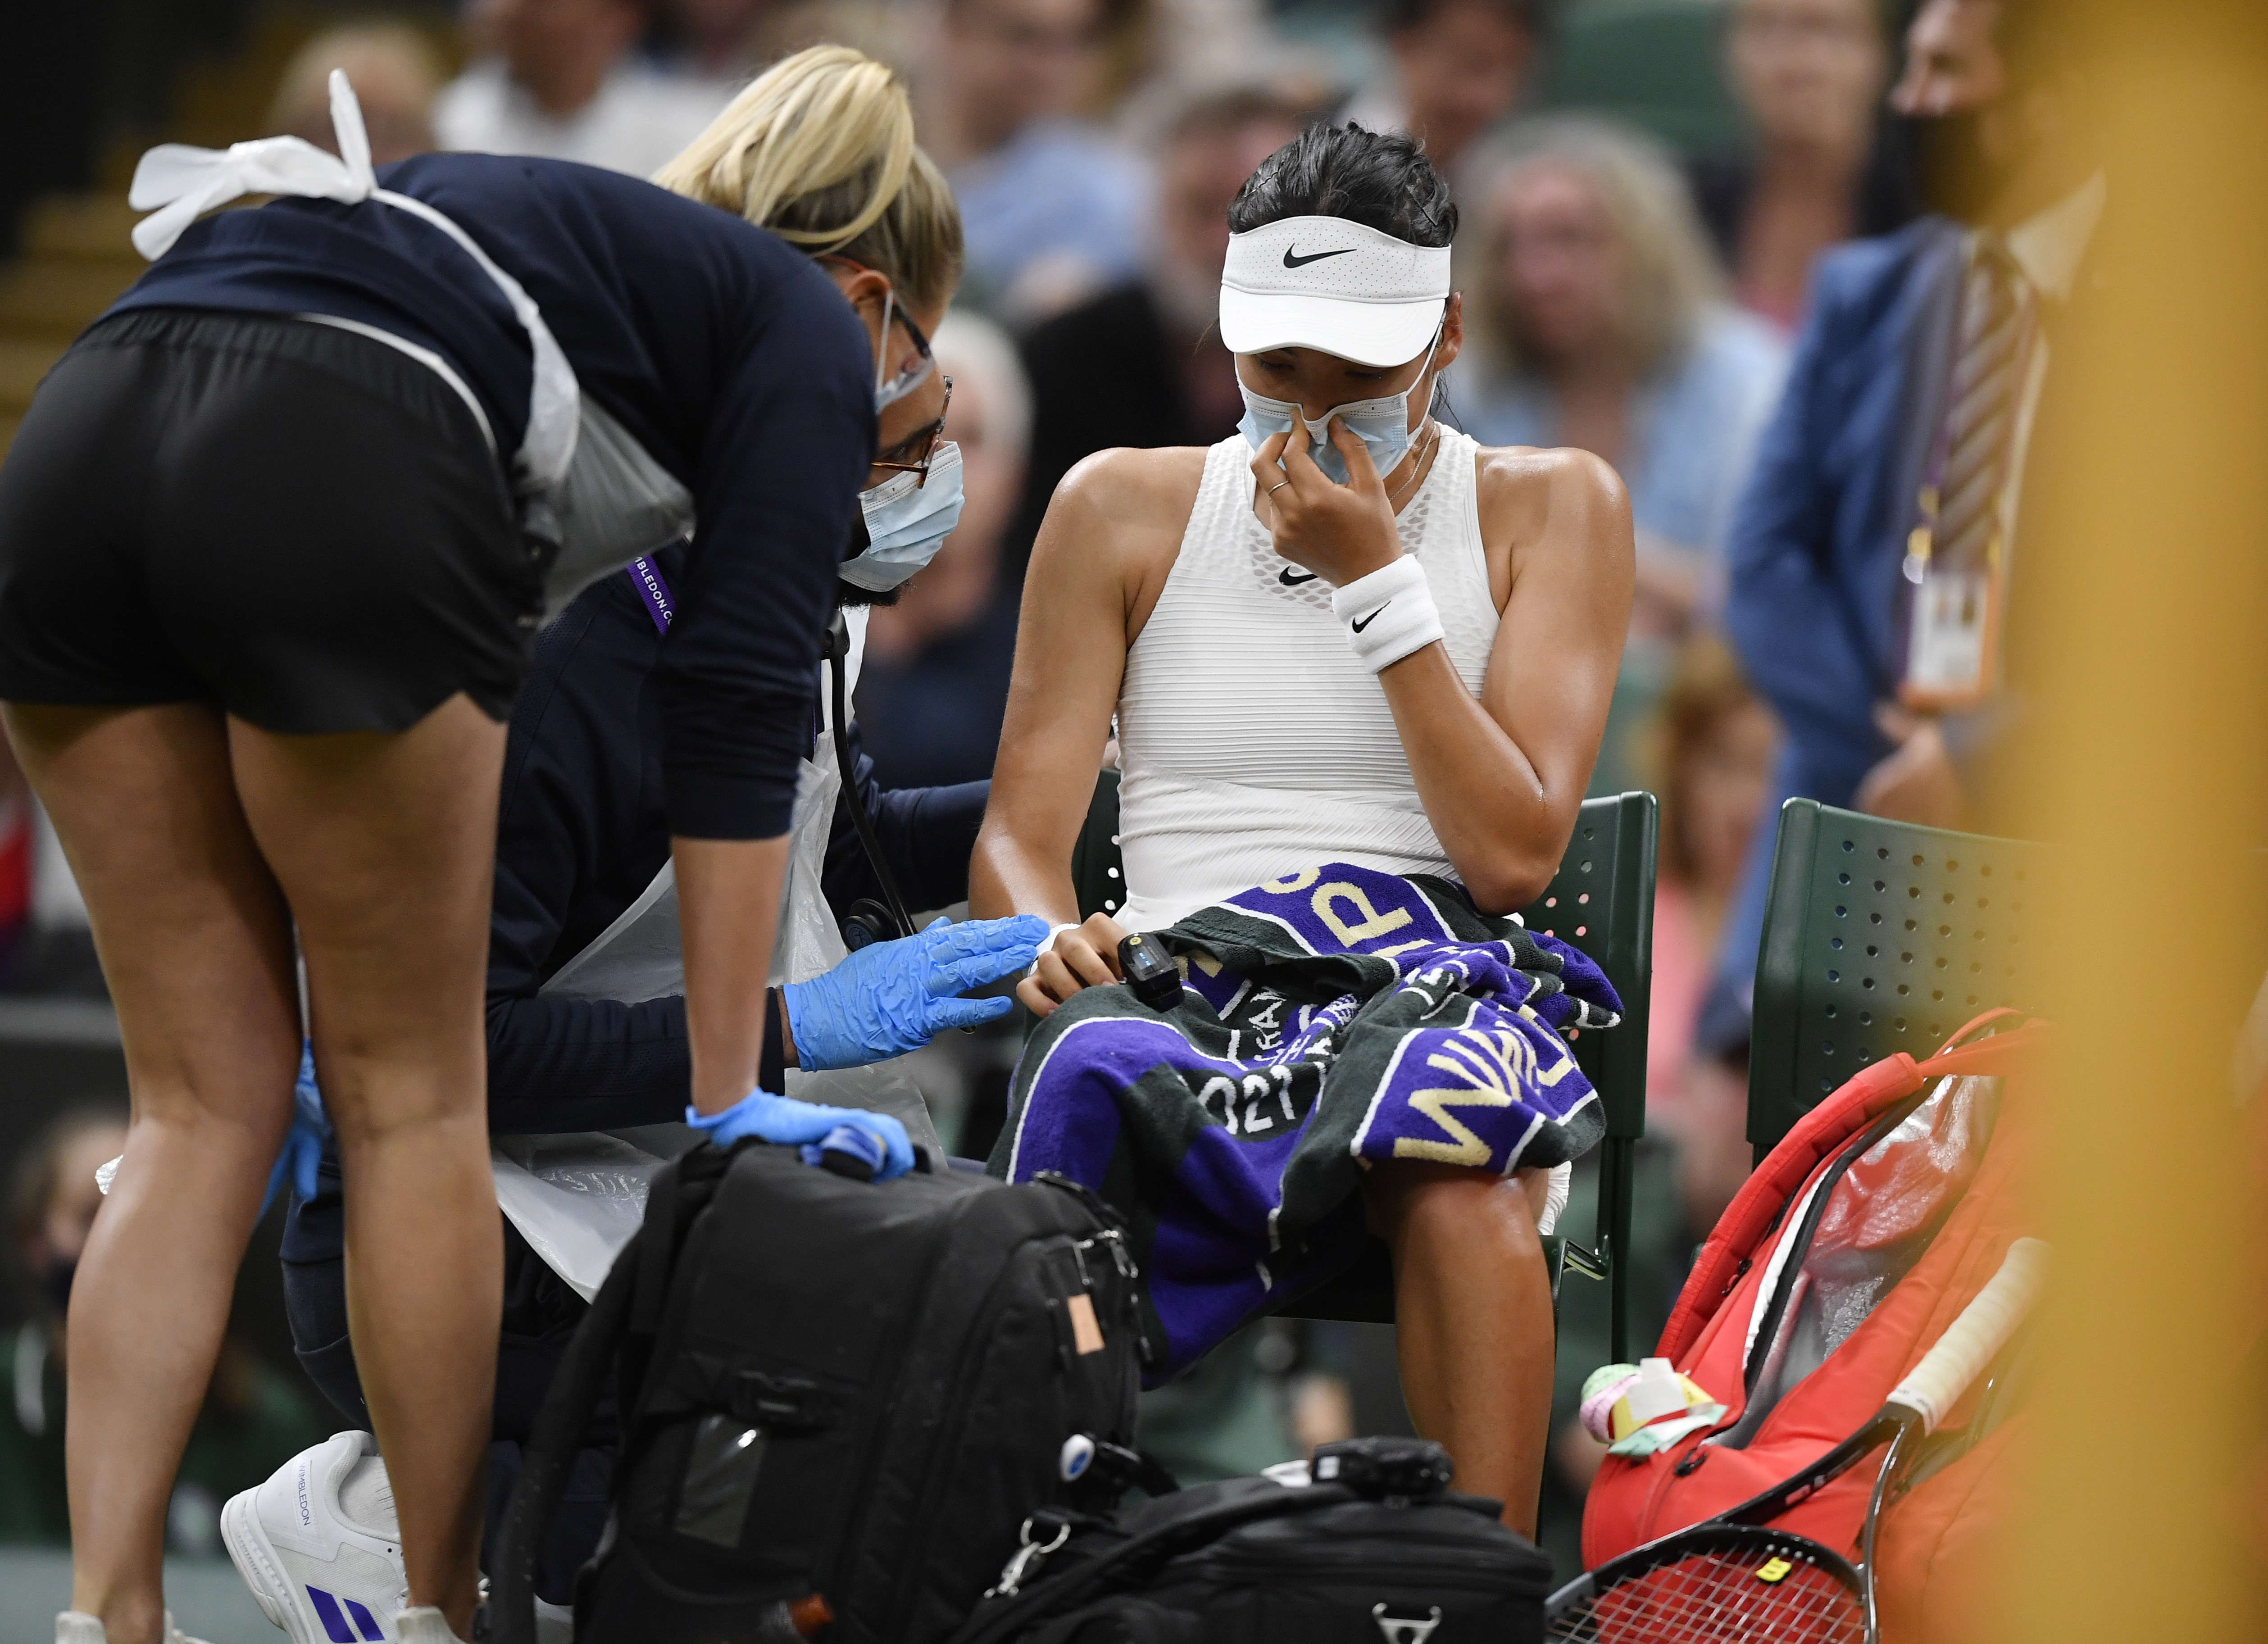 Tennis - Wimbledon - All England Lawn Tennis and Croquet Club, London, Britain - July 5, 2021 Britain's Emma Raducanu receives medical attention during her fourth round match against Australia's Ajla Tomljanovic